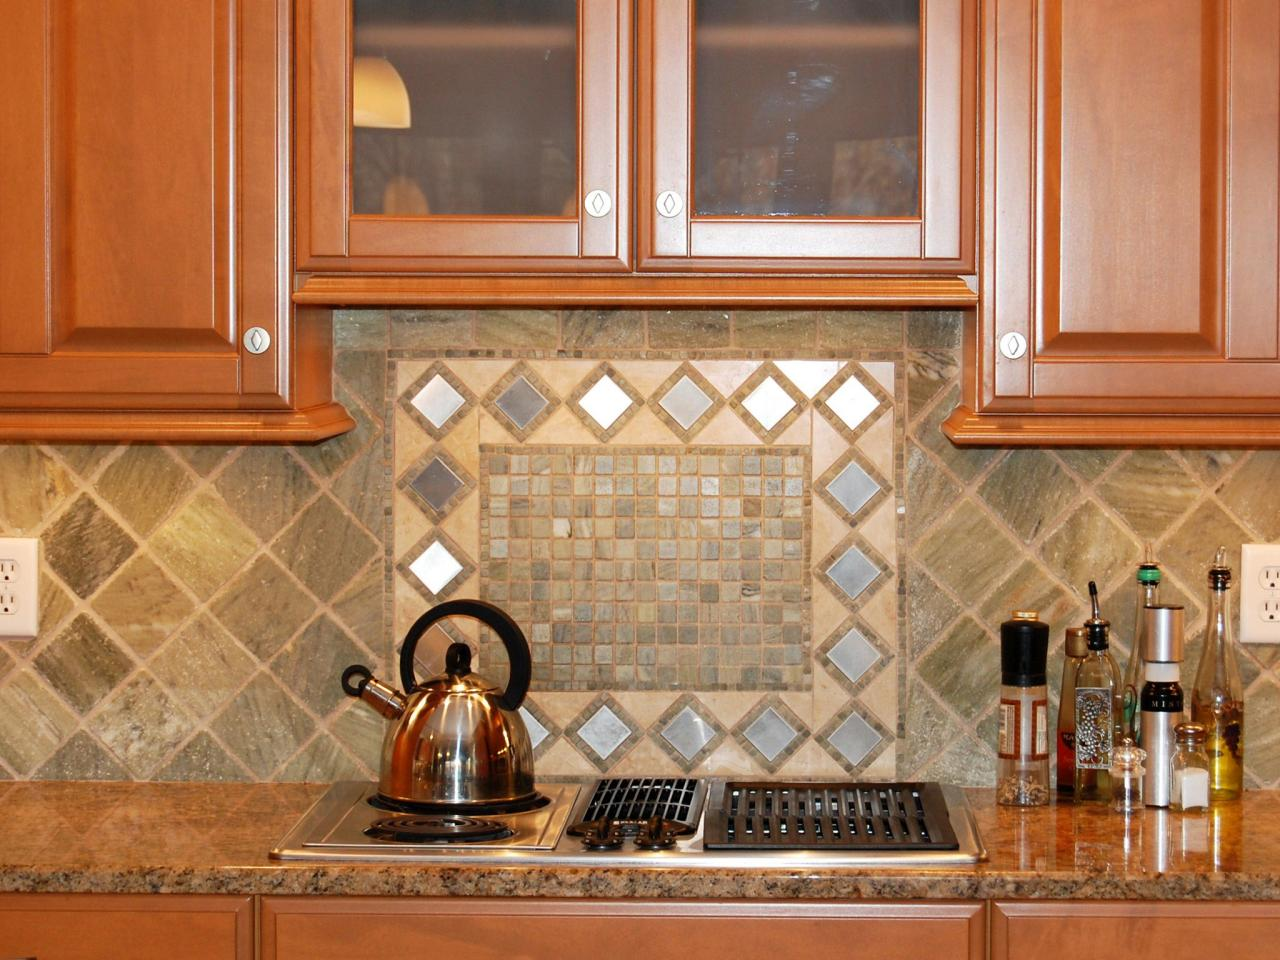 Travertine tile backsplash ideas kitchen designs choose kitchen layouts remodeling - Backsplash ideas kitchen ...